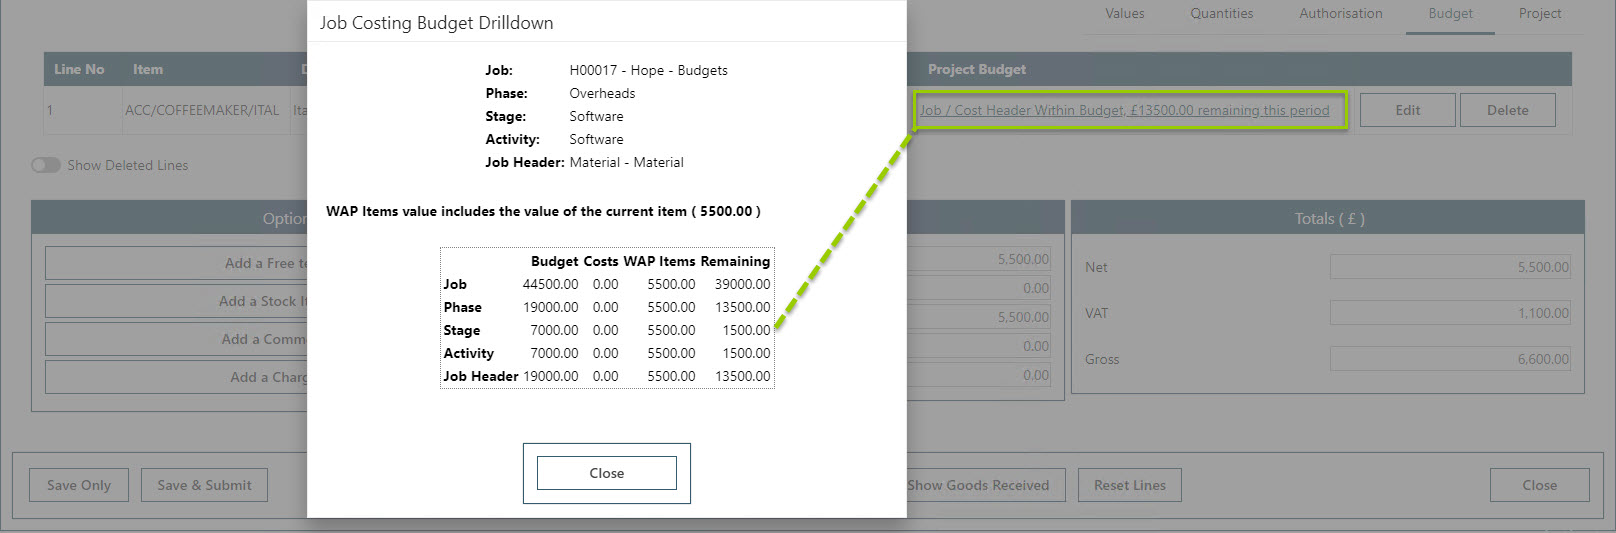 Sicon WAP Purchase Requisitions Help and User Guide - Requisition HUG Section 21.4 Image 6